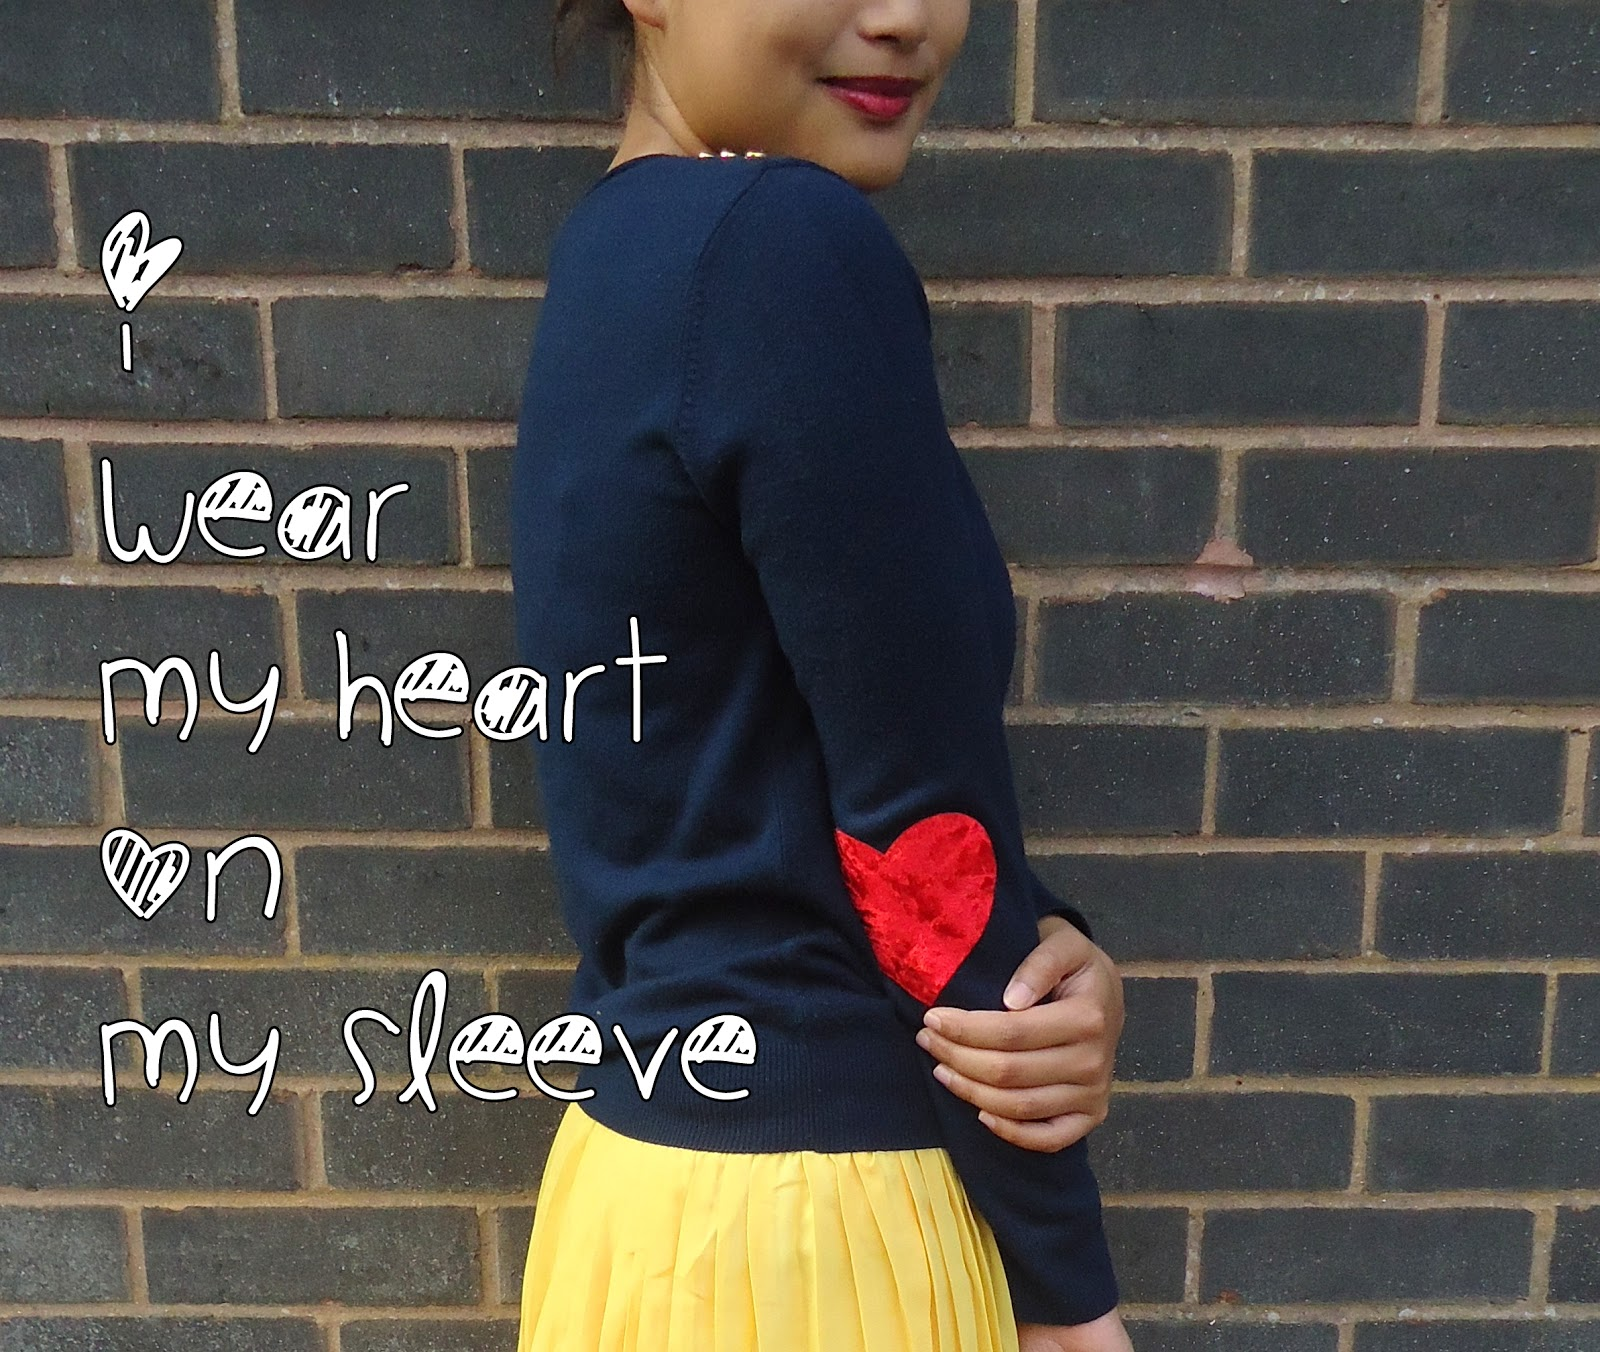 http://pridenstyle.blogspot.co.uk/2014/09/diy-i-wear-my-heart-on-my-sleeve.html